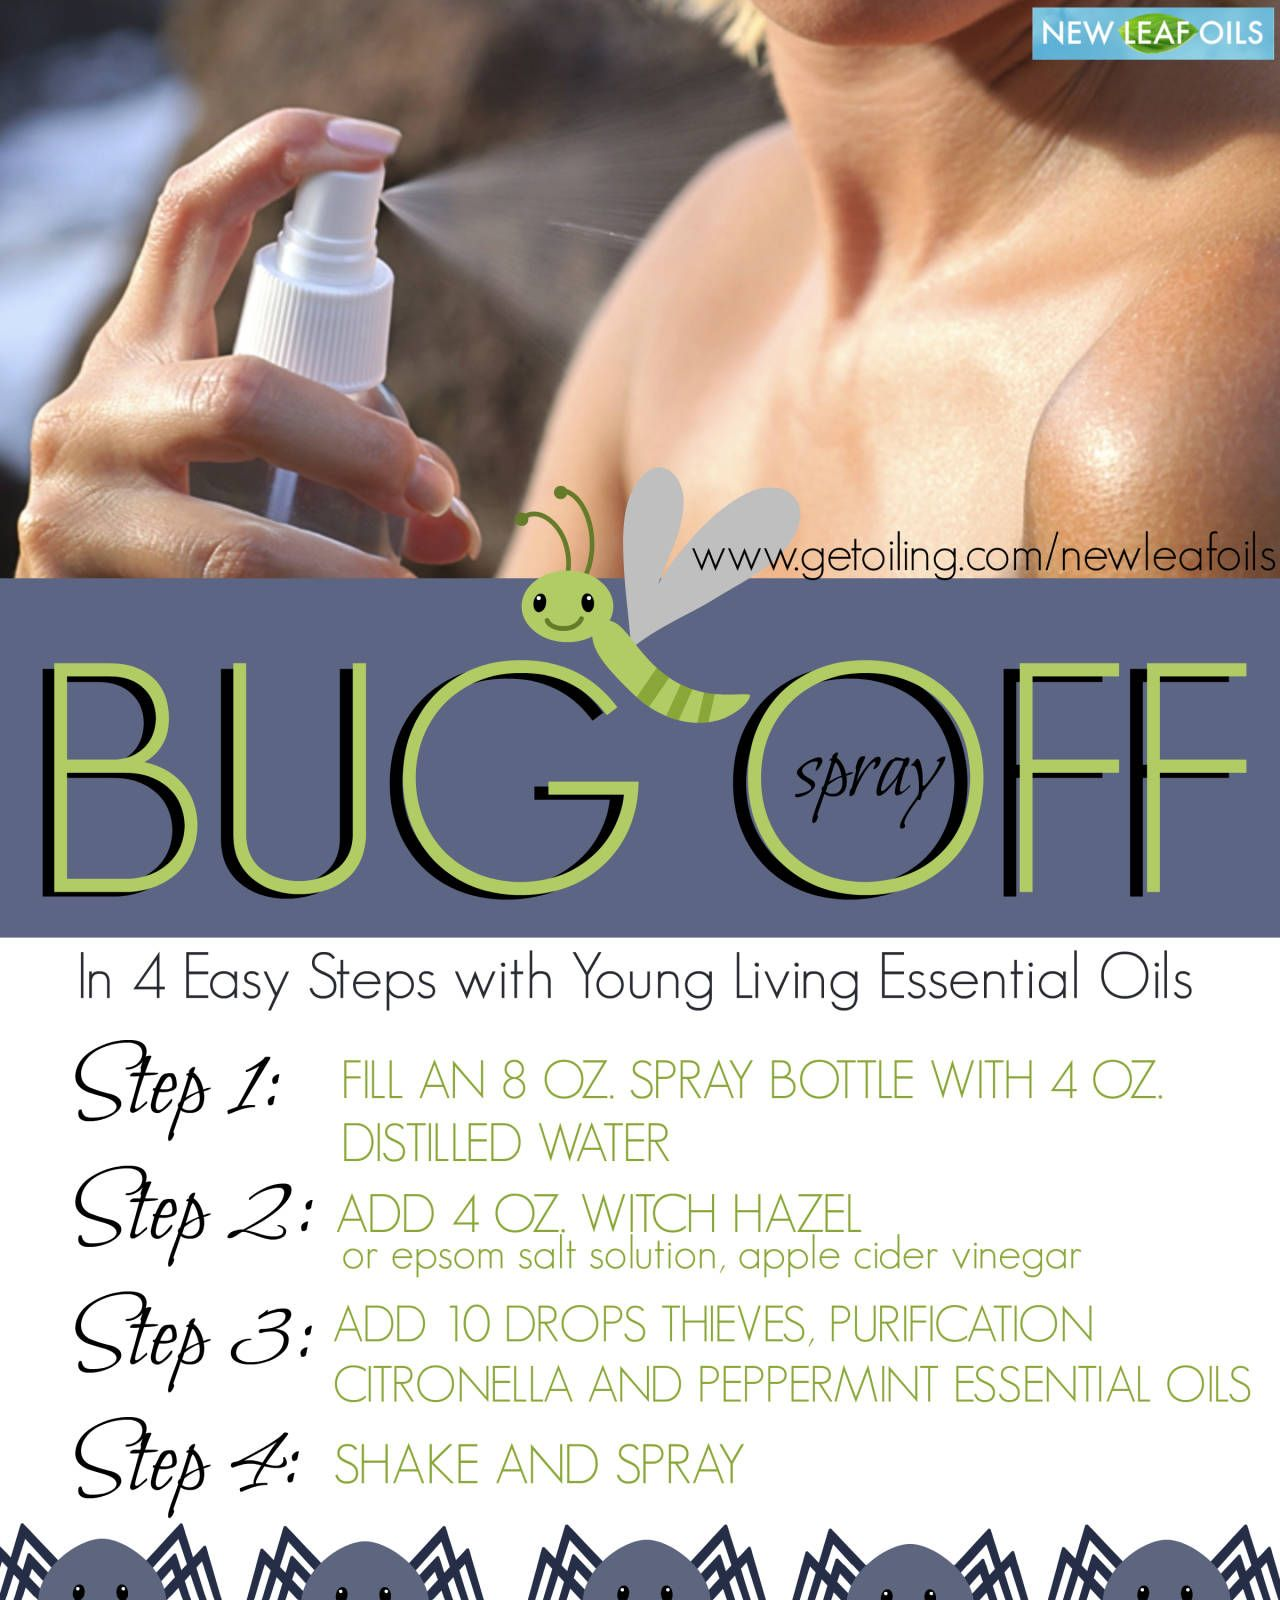 BUG OFF check out more tips at www.getoiling.com/newleafoils